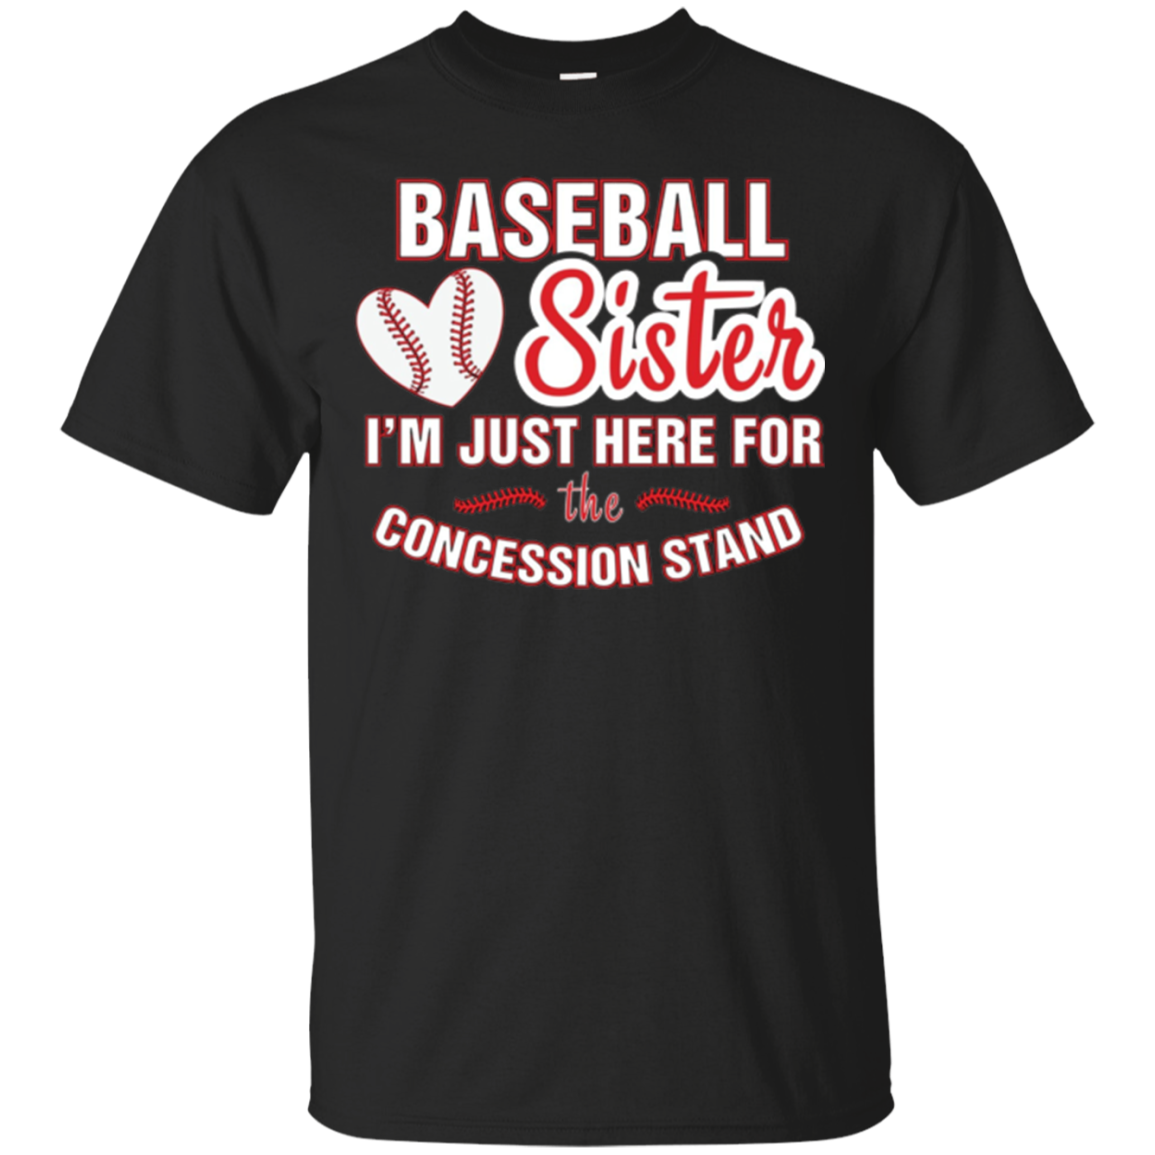 Baseball Sister Shirt I'm Just Here For Concession Stand